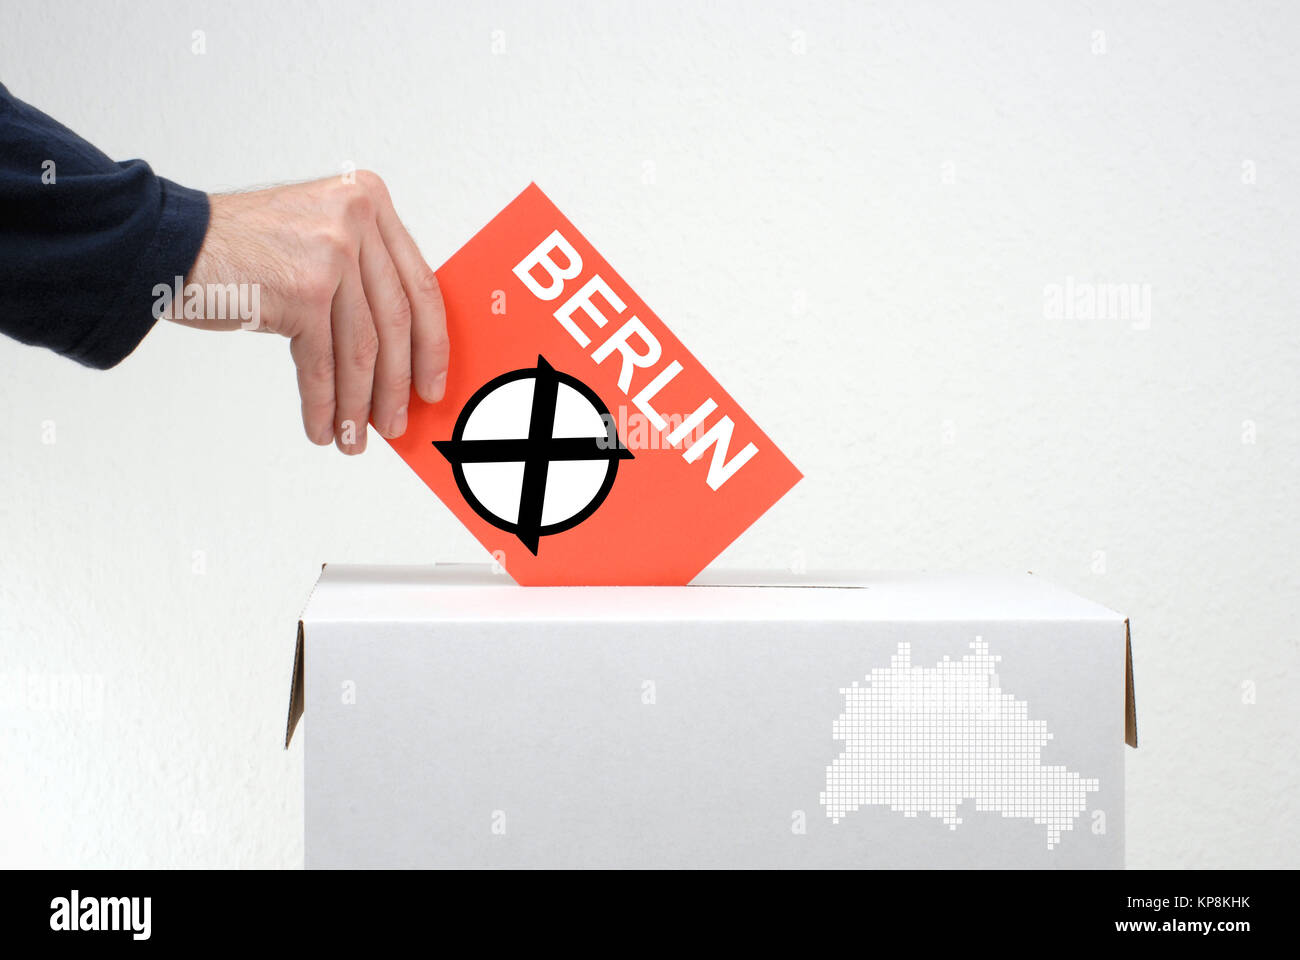 choice in berlin - Stock Image